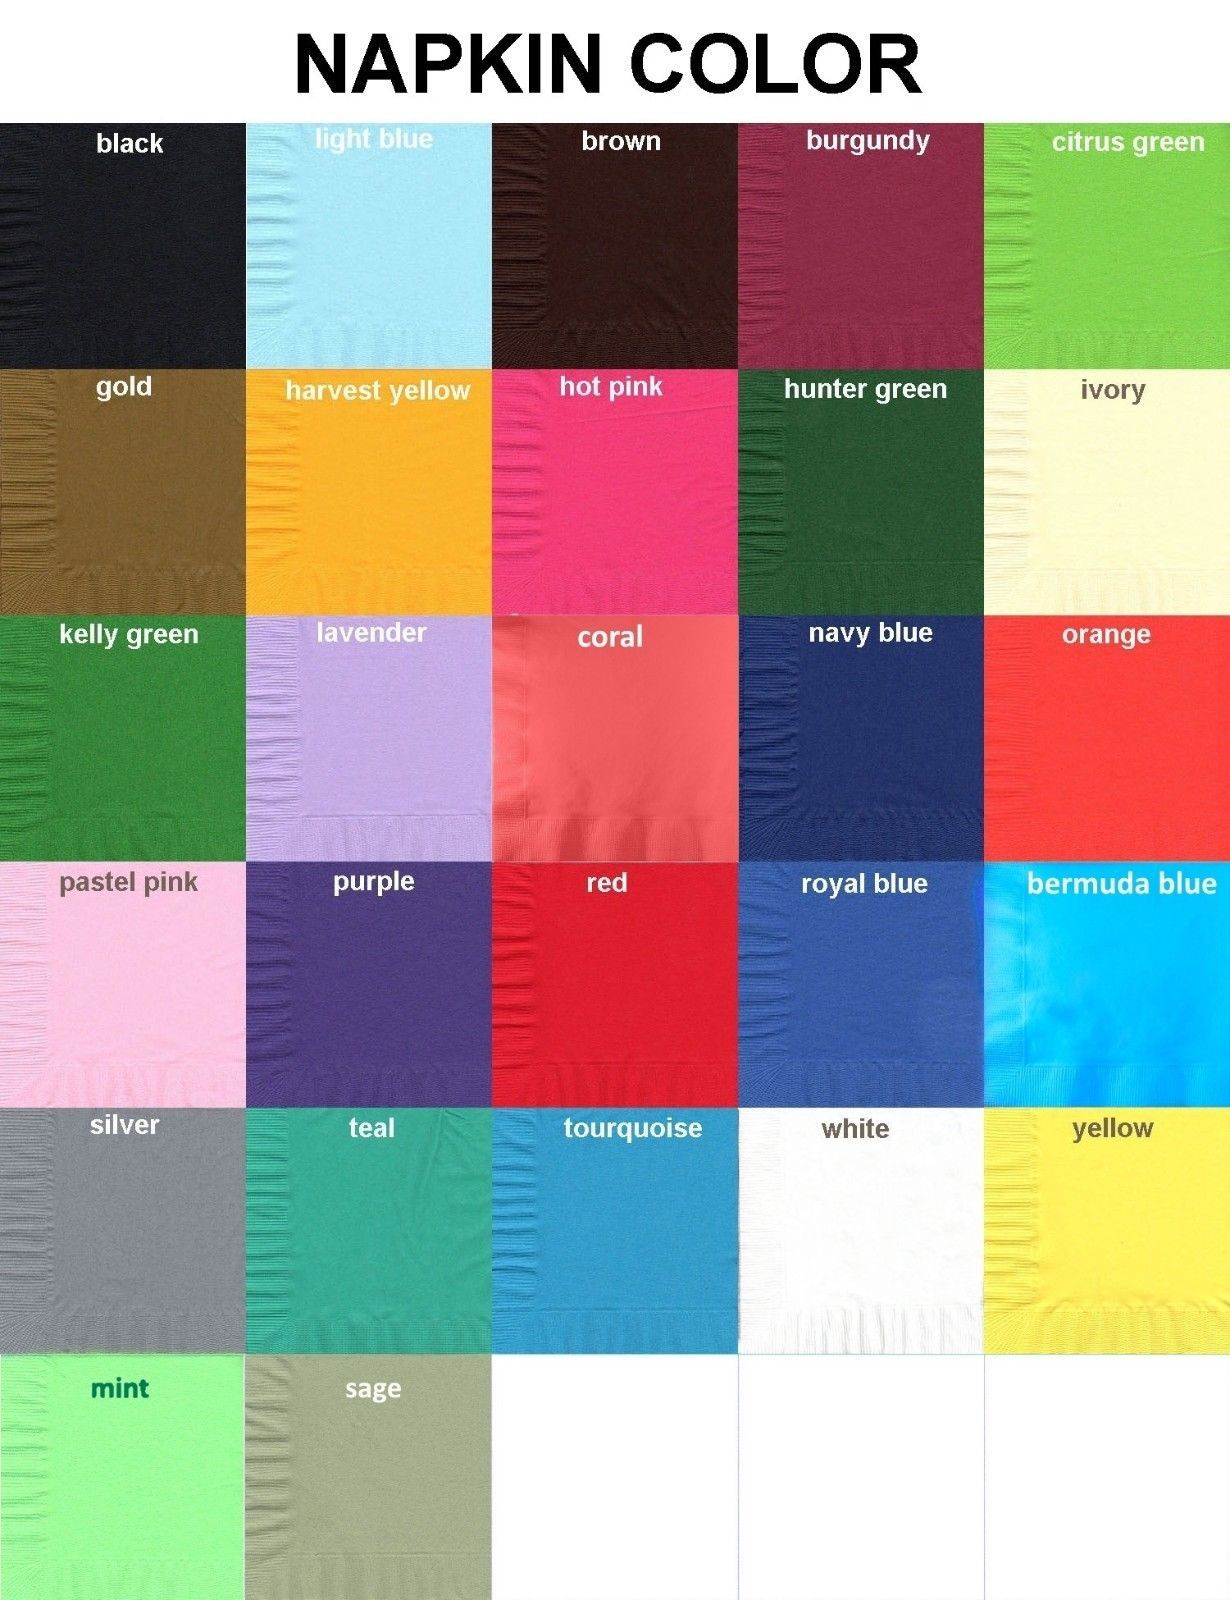 250 large Sheldon Monogram printed napkins your choice of letter and colors image 4